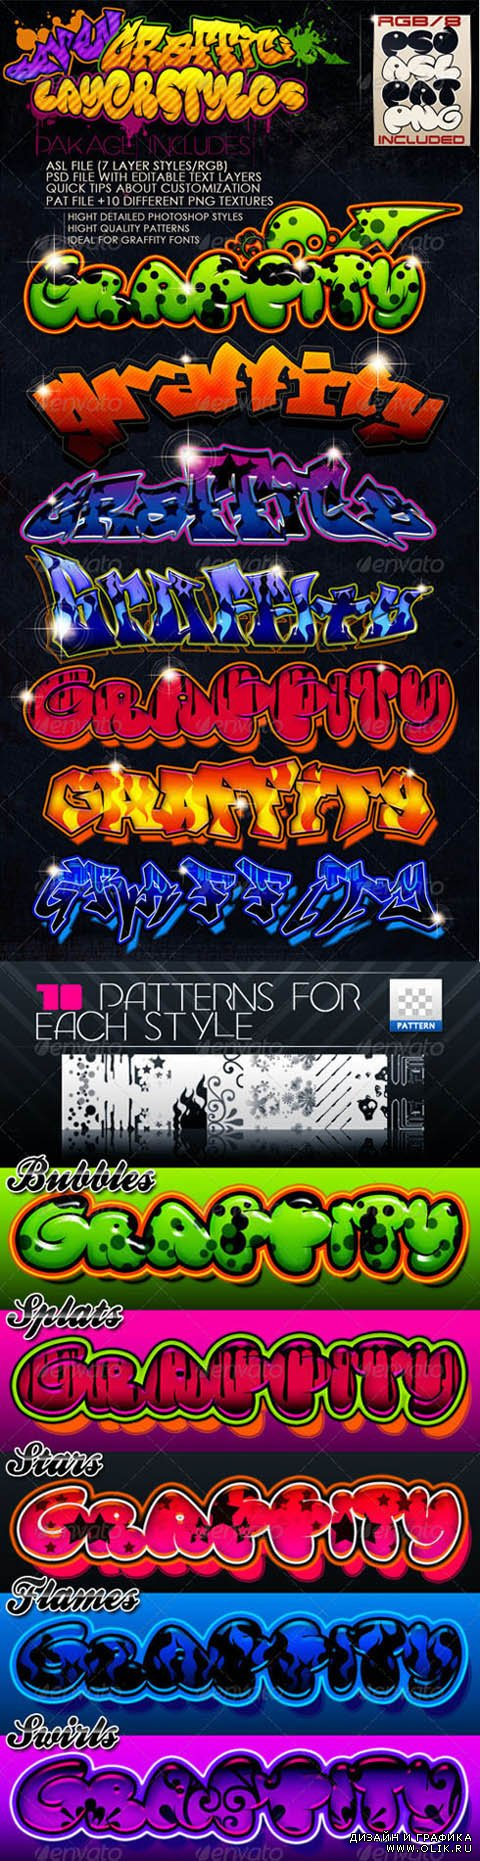 Graffiti Styles for Photoshop